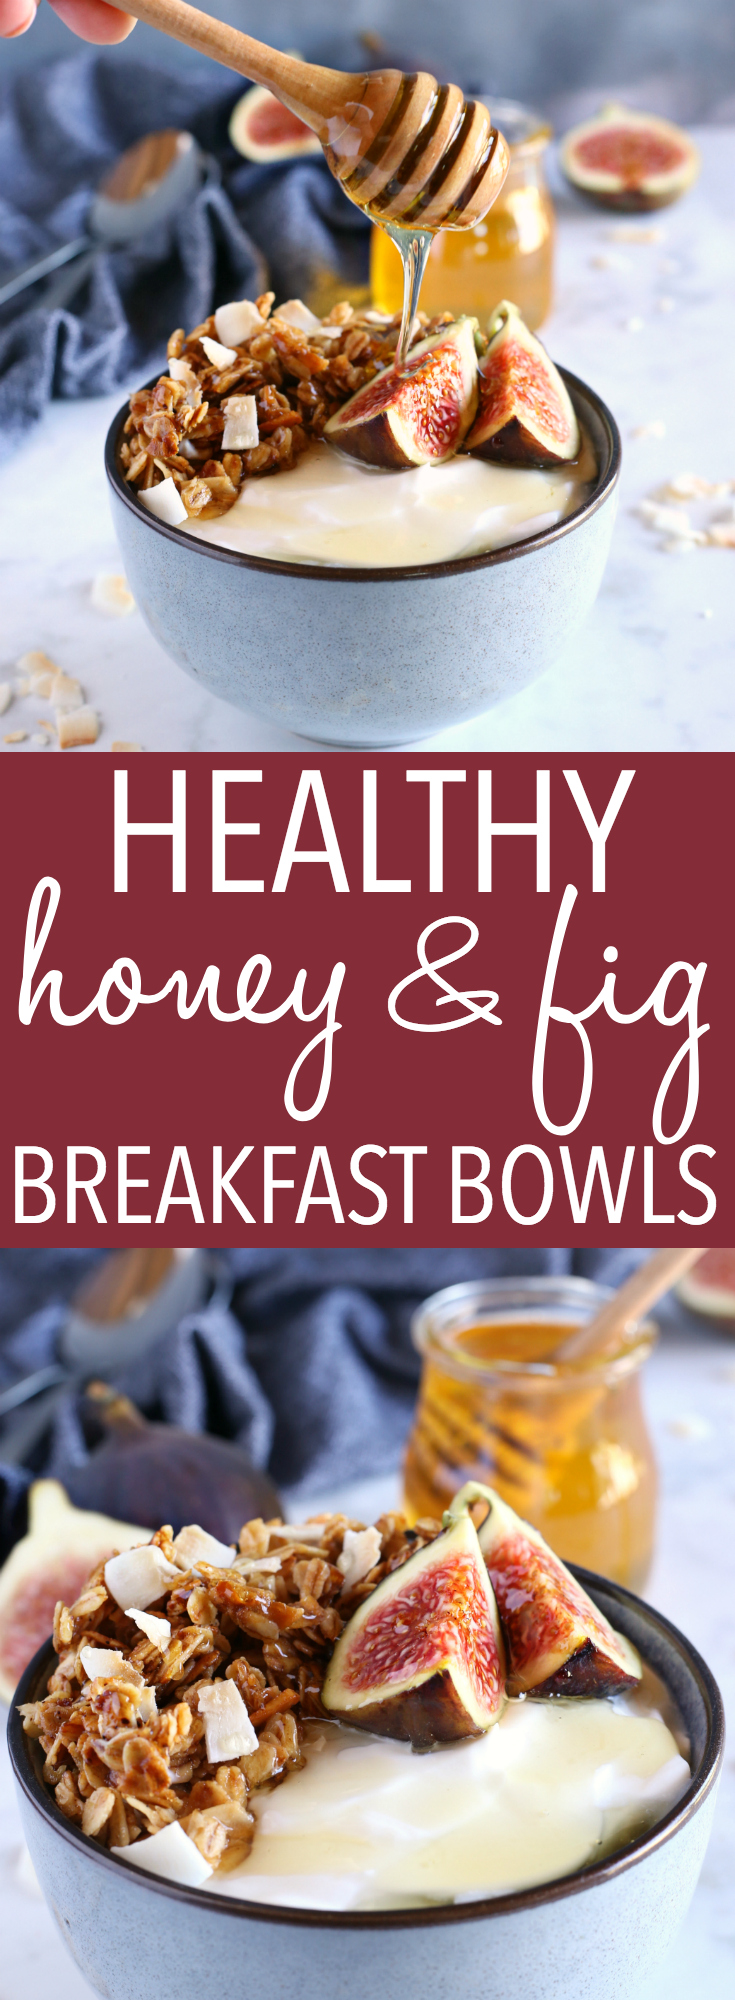 These Healthy Honey and Fig Breakfast Bowls are the perfect quick and easy breakfast idea for busy mornings - they're packed with protein, healthy fats, fresh fruit and sweet honey! Recipe from thebusybaker.ca! #fig #figs #healthy #cleaneating #granola #breakfast #easy #recipe #eatclean #honey #vegetarian #dairyfree #coconut #musli #cereal #homemade via @busybakerblog